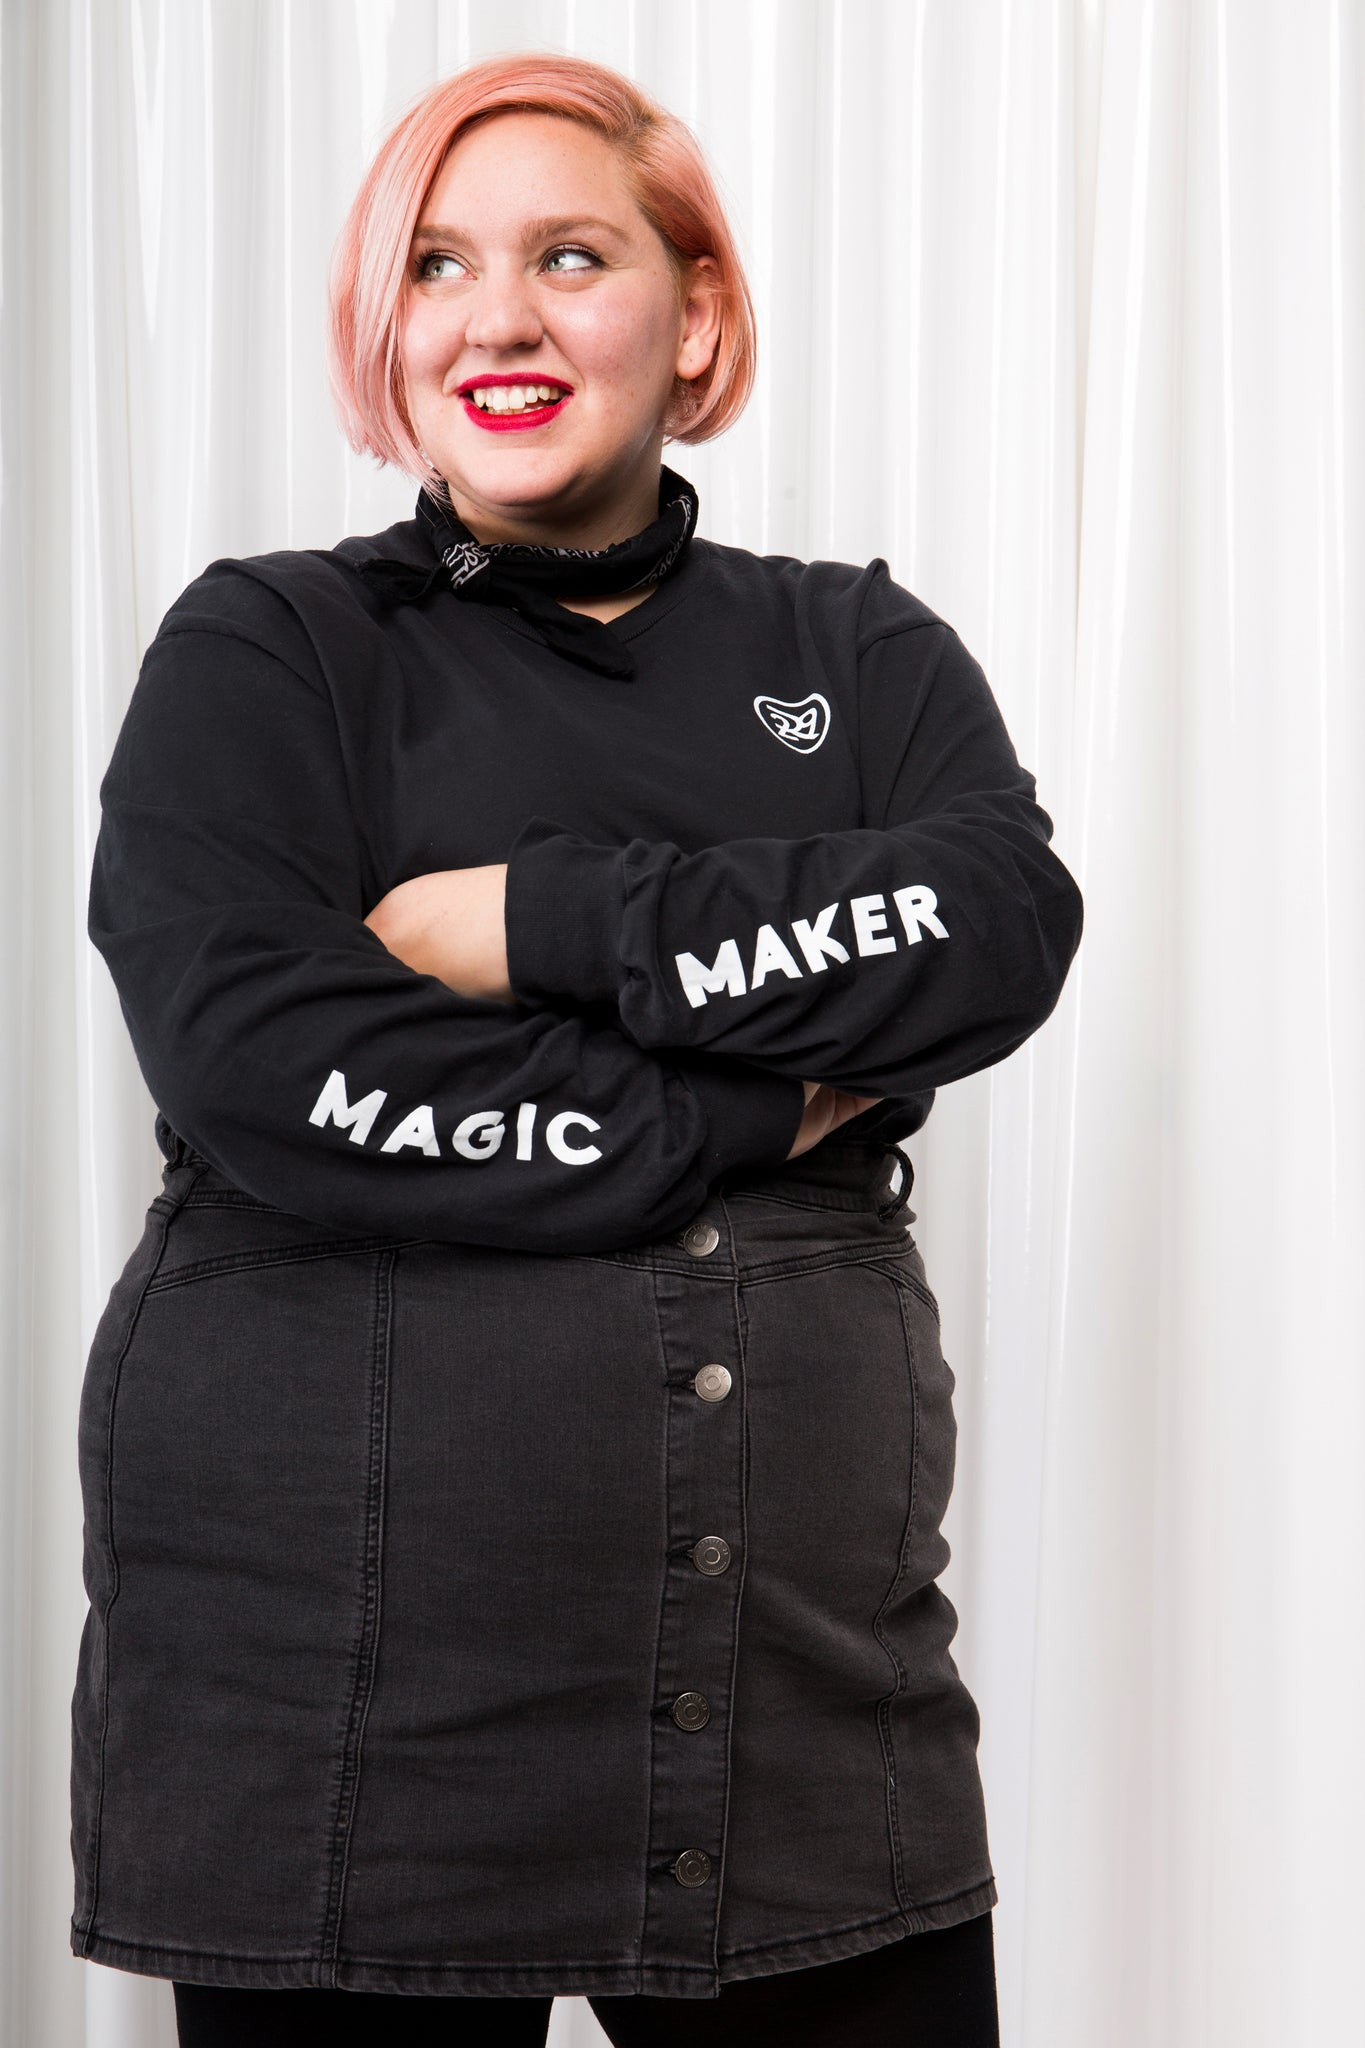 MAGIC MAKER LONG SLEEVE TEE